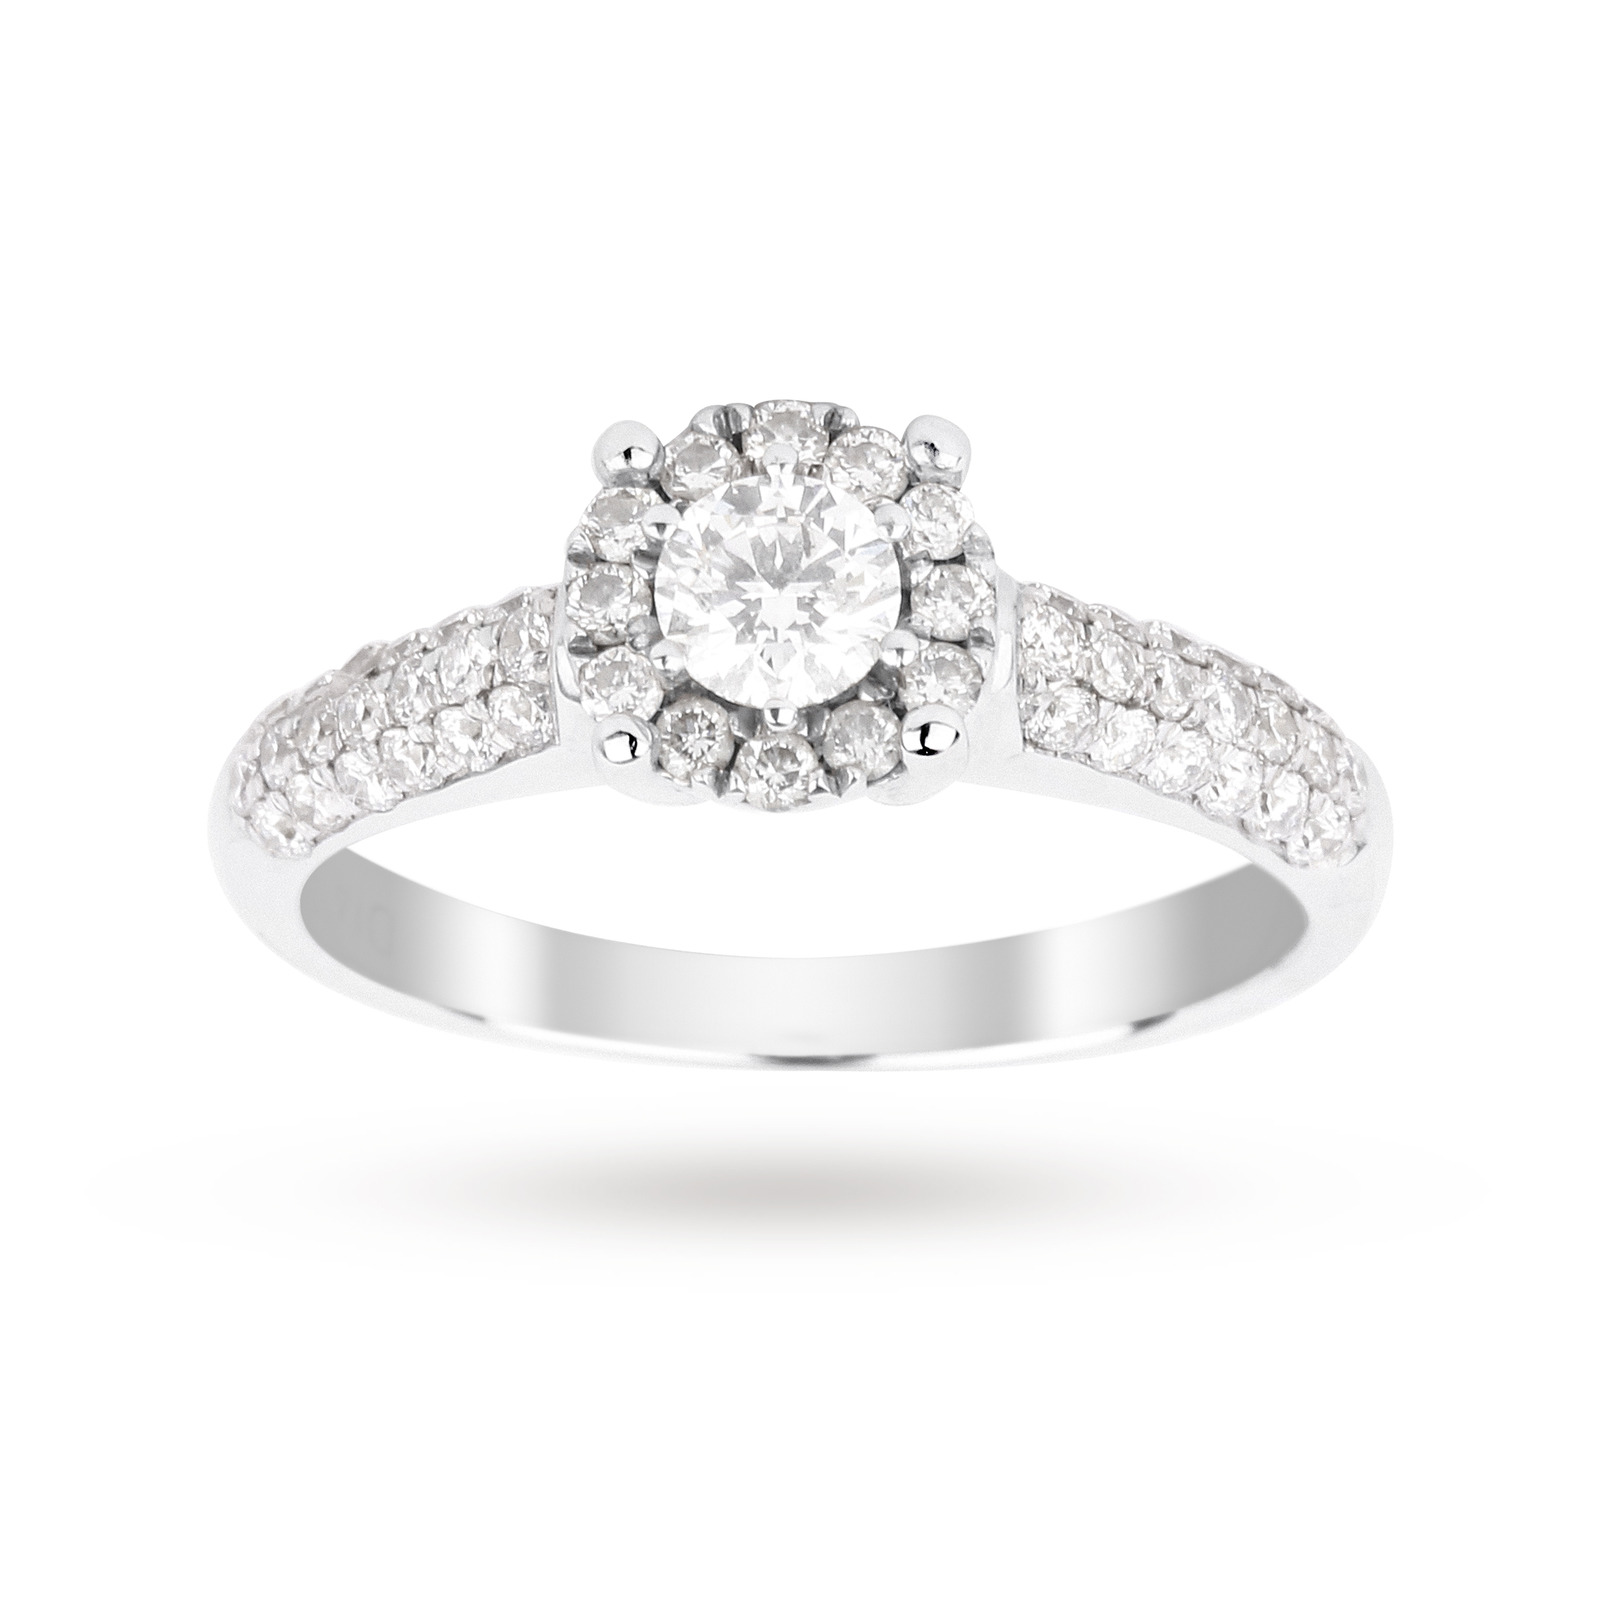 Brilliant cut 0.48 total carat weight cluster and diamond set shoulders ring set in 9 carat white go